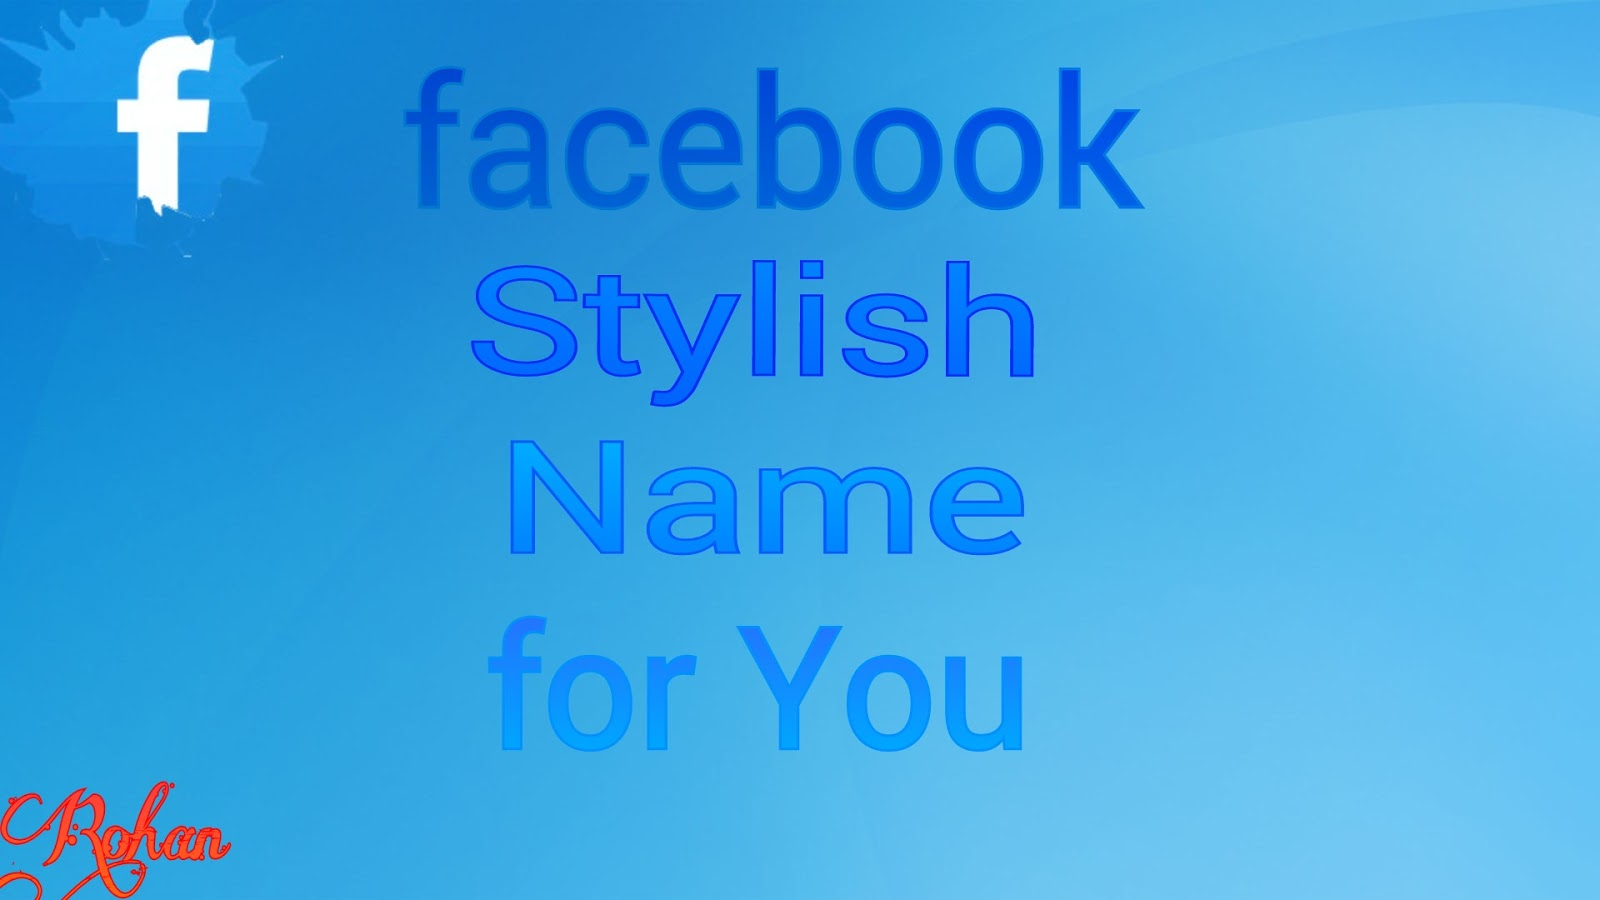 Stylish Name For Facebook Trickz With Devil